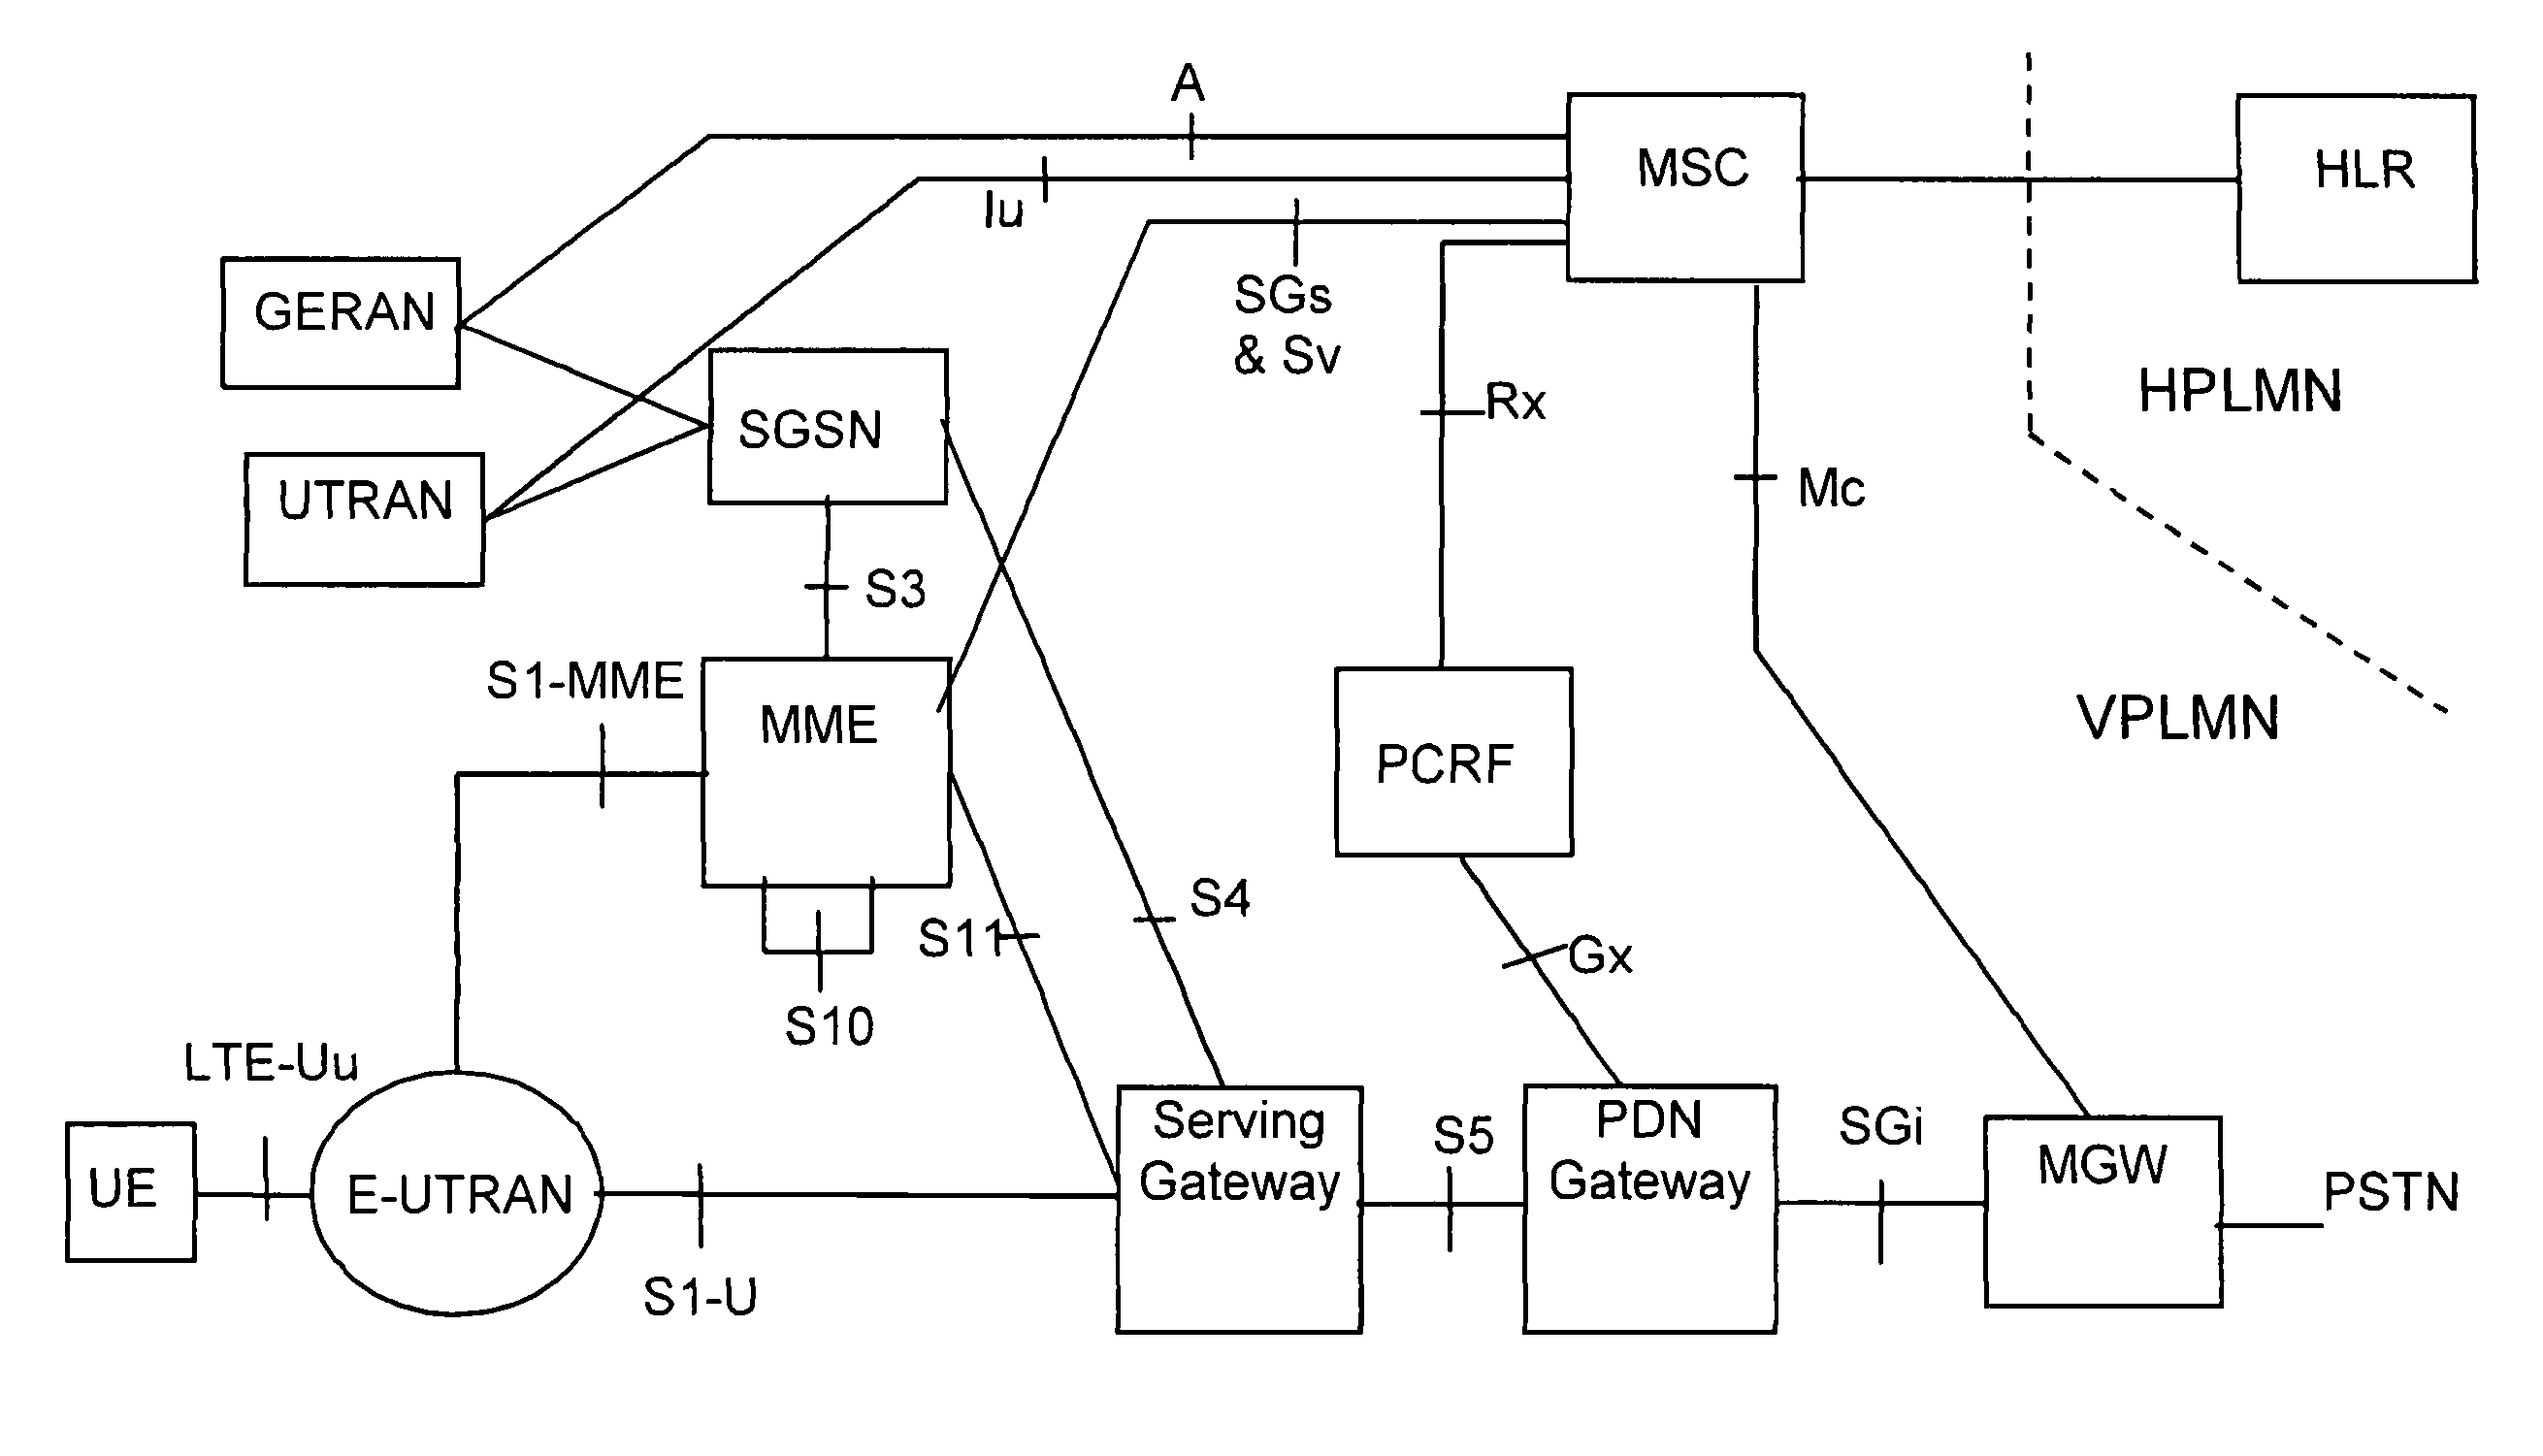 Us8400931 Circuit Switched Services Over Lte Switching Diagram Patent Drawing